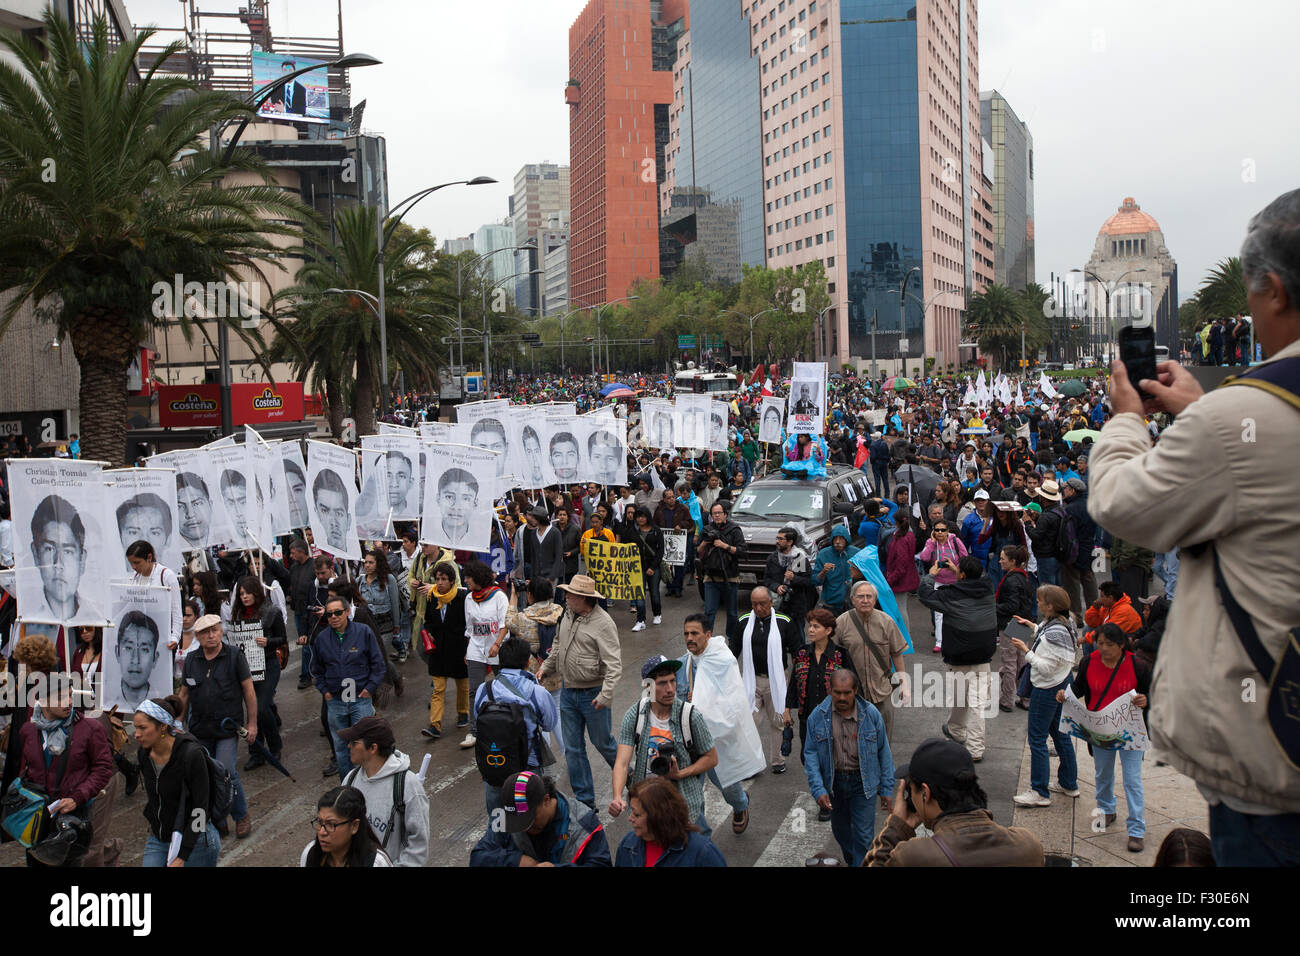 Mexico City, Mexico. 26th Sep, 2015. Thousands of people march to mark the one-year anniversary of the disappearance Stock Photo